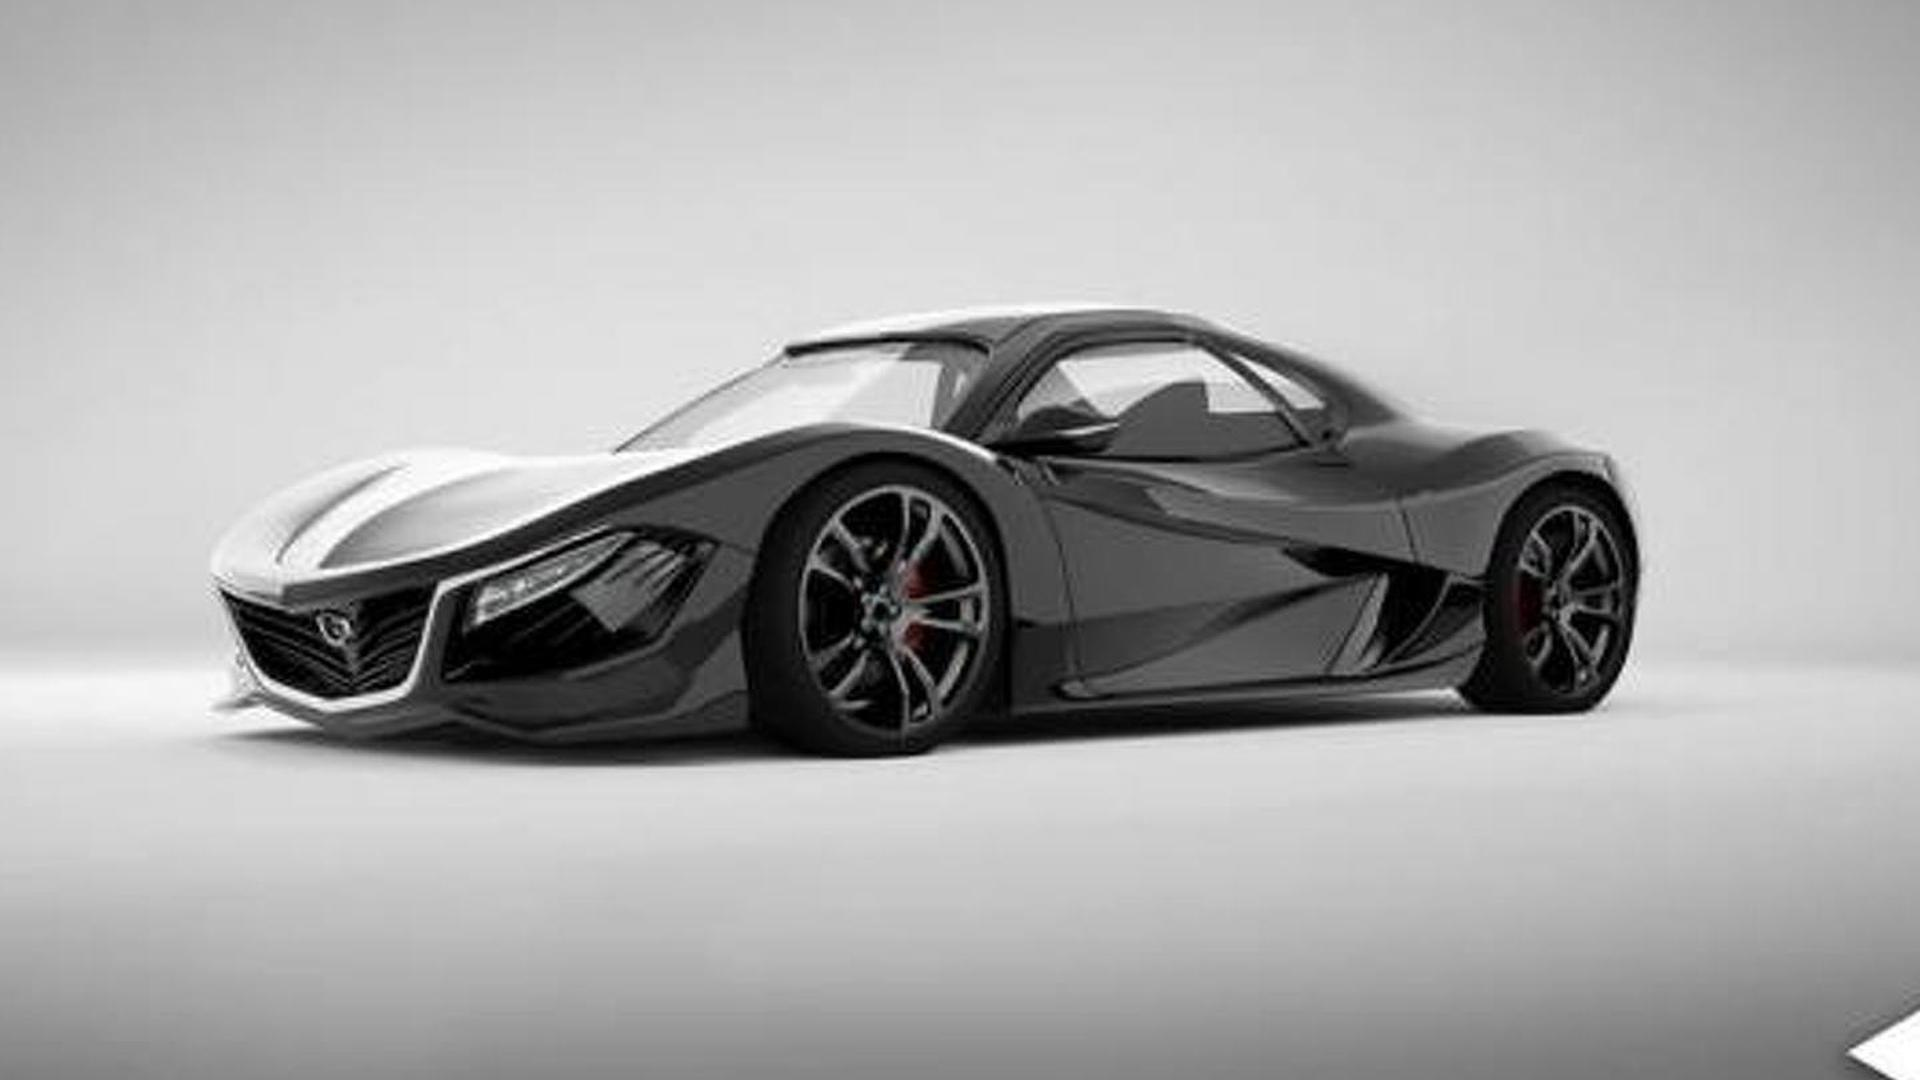 Rotary Powered 450 Bhp Mazda Rx 9 Concept Allegedly Coming